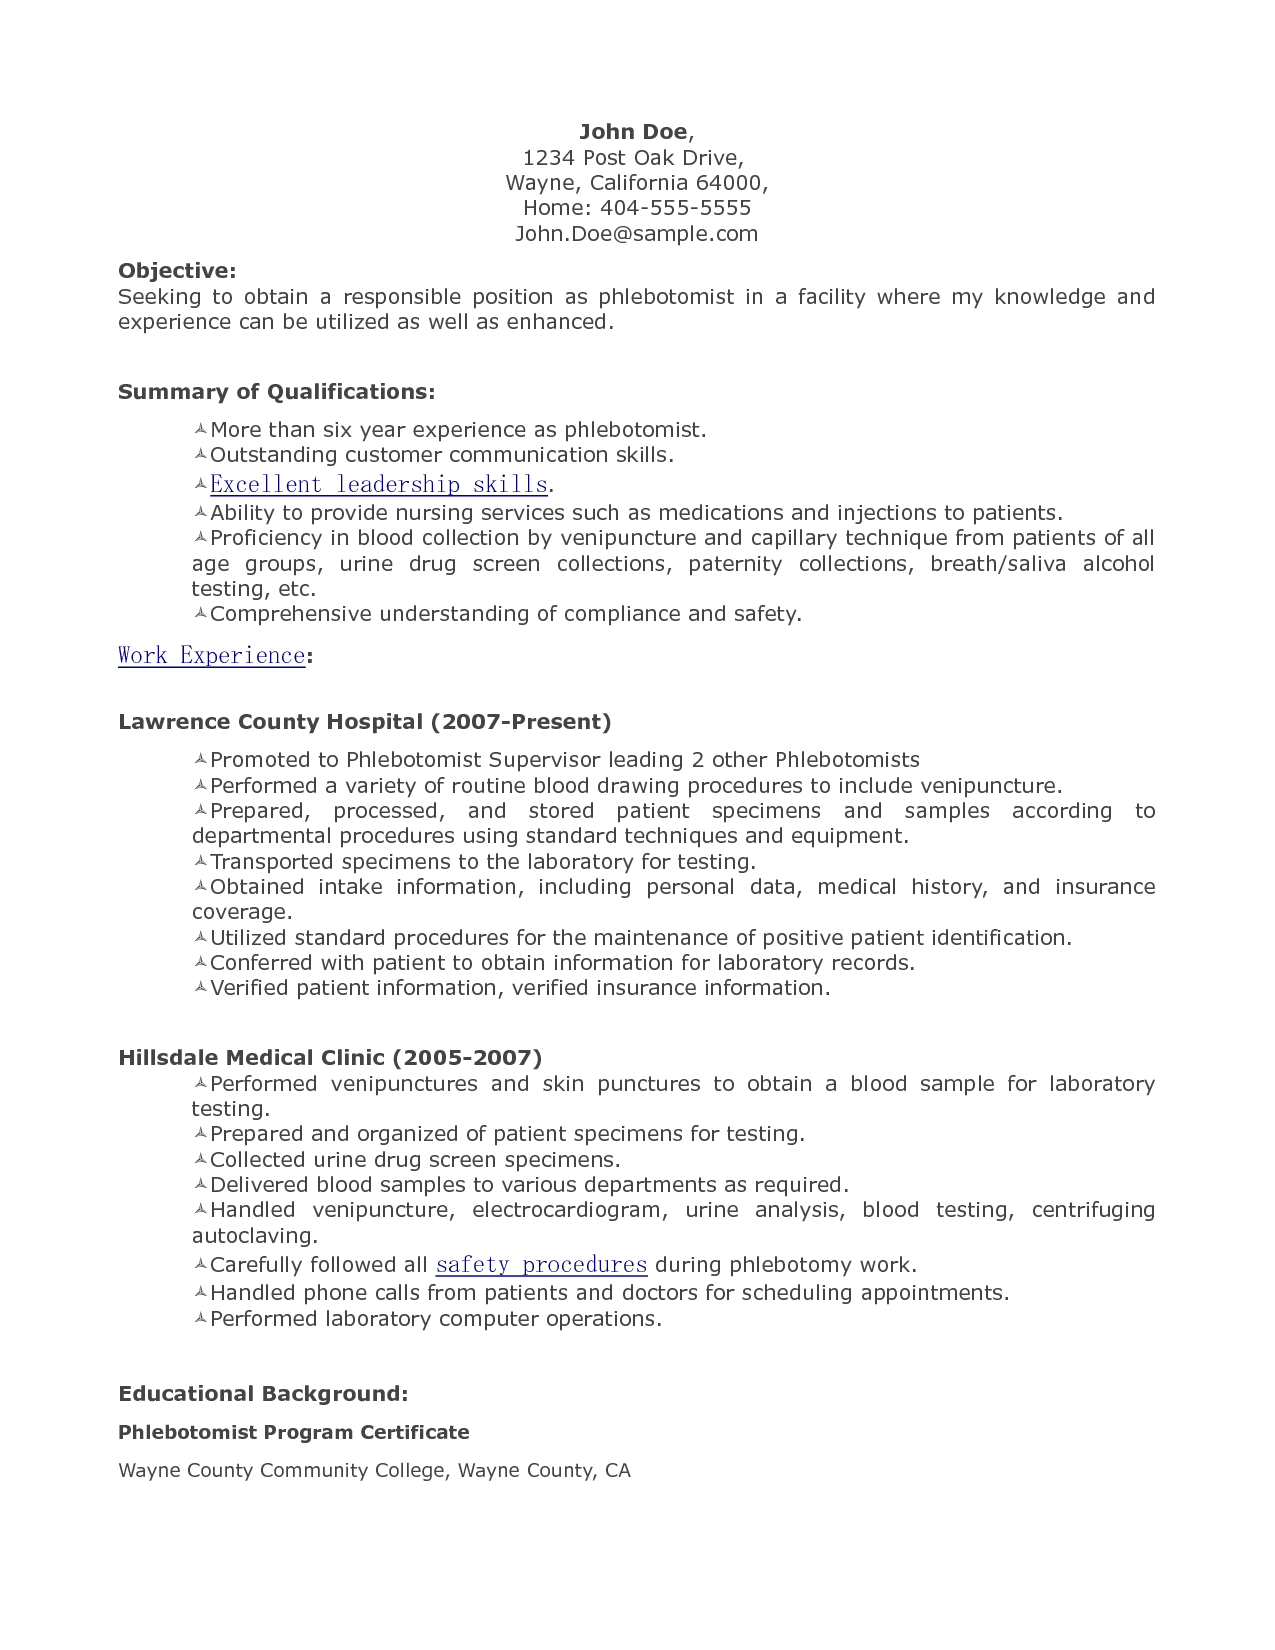 Phlebotomist Resume Samples Resume Objectives For A Phlebotomist Sample Phlebotomist